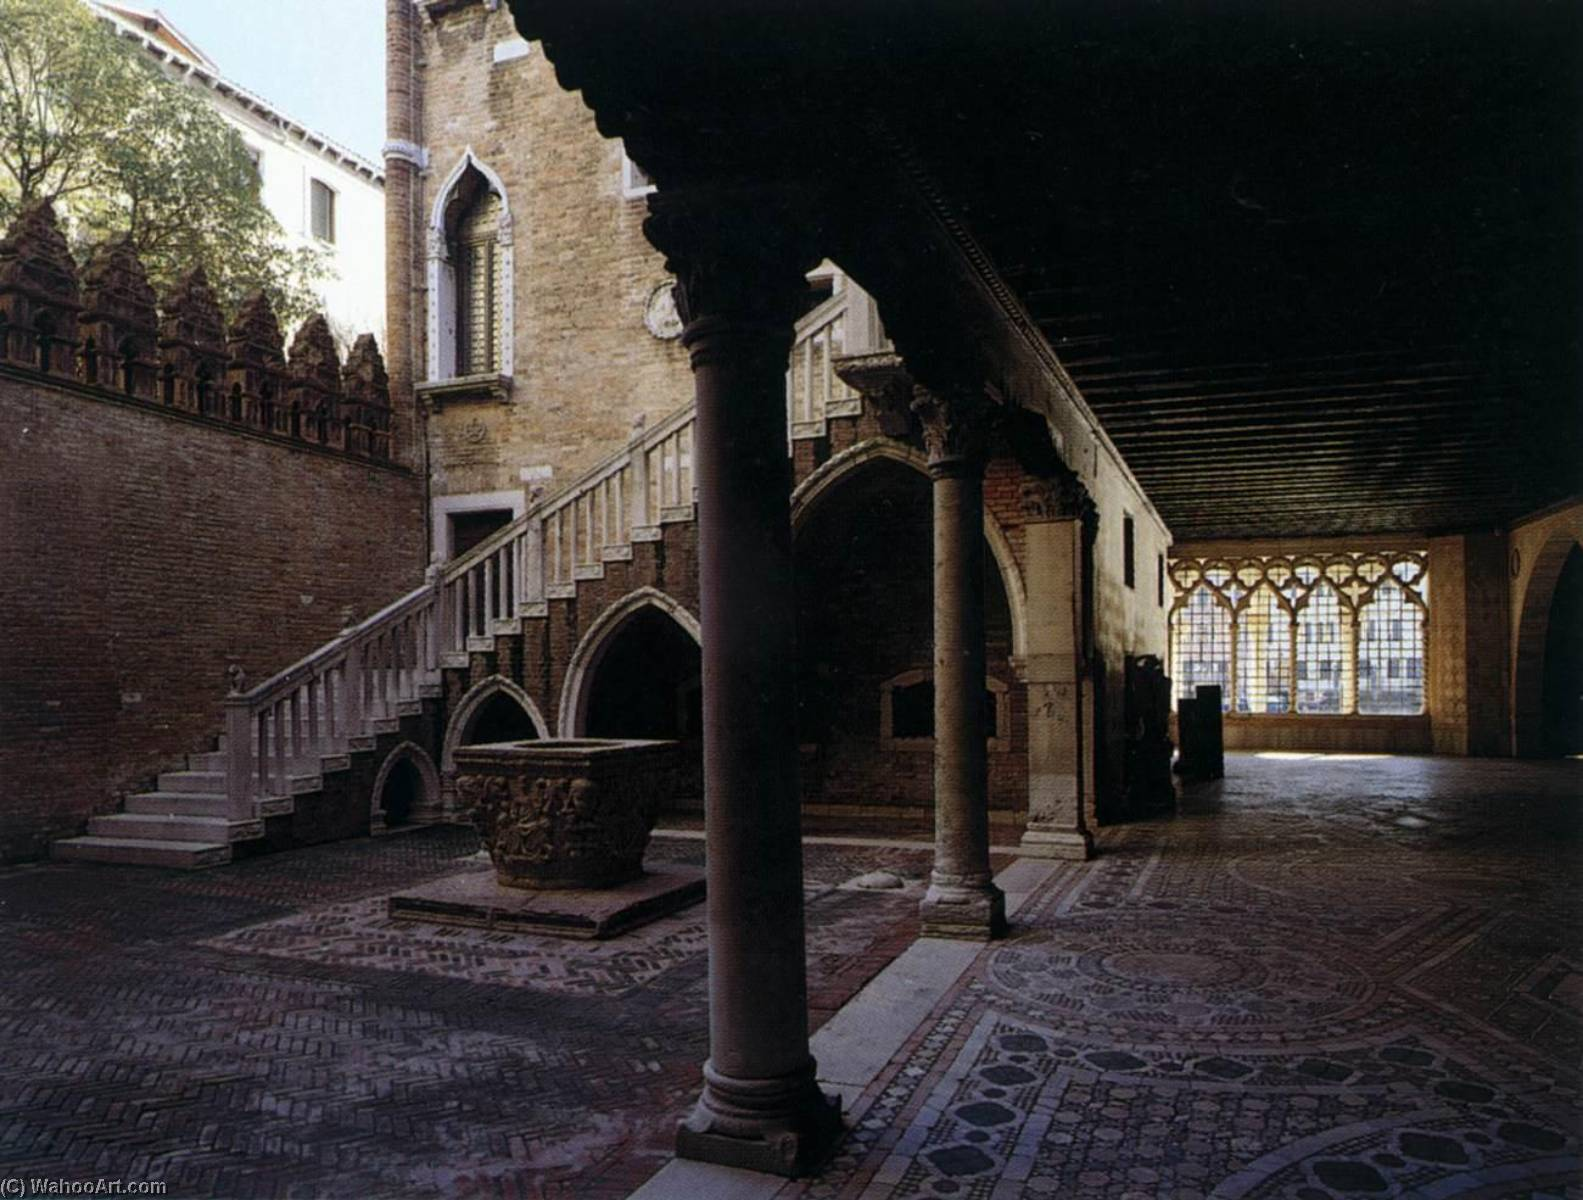 Ca' d'Oro Portico and inner courtyard, 1427 by Matteo Raverti